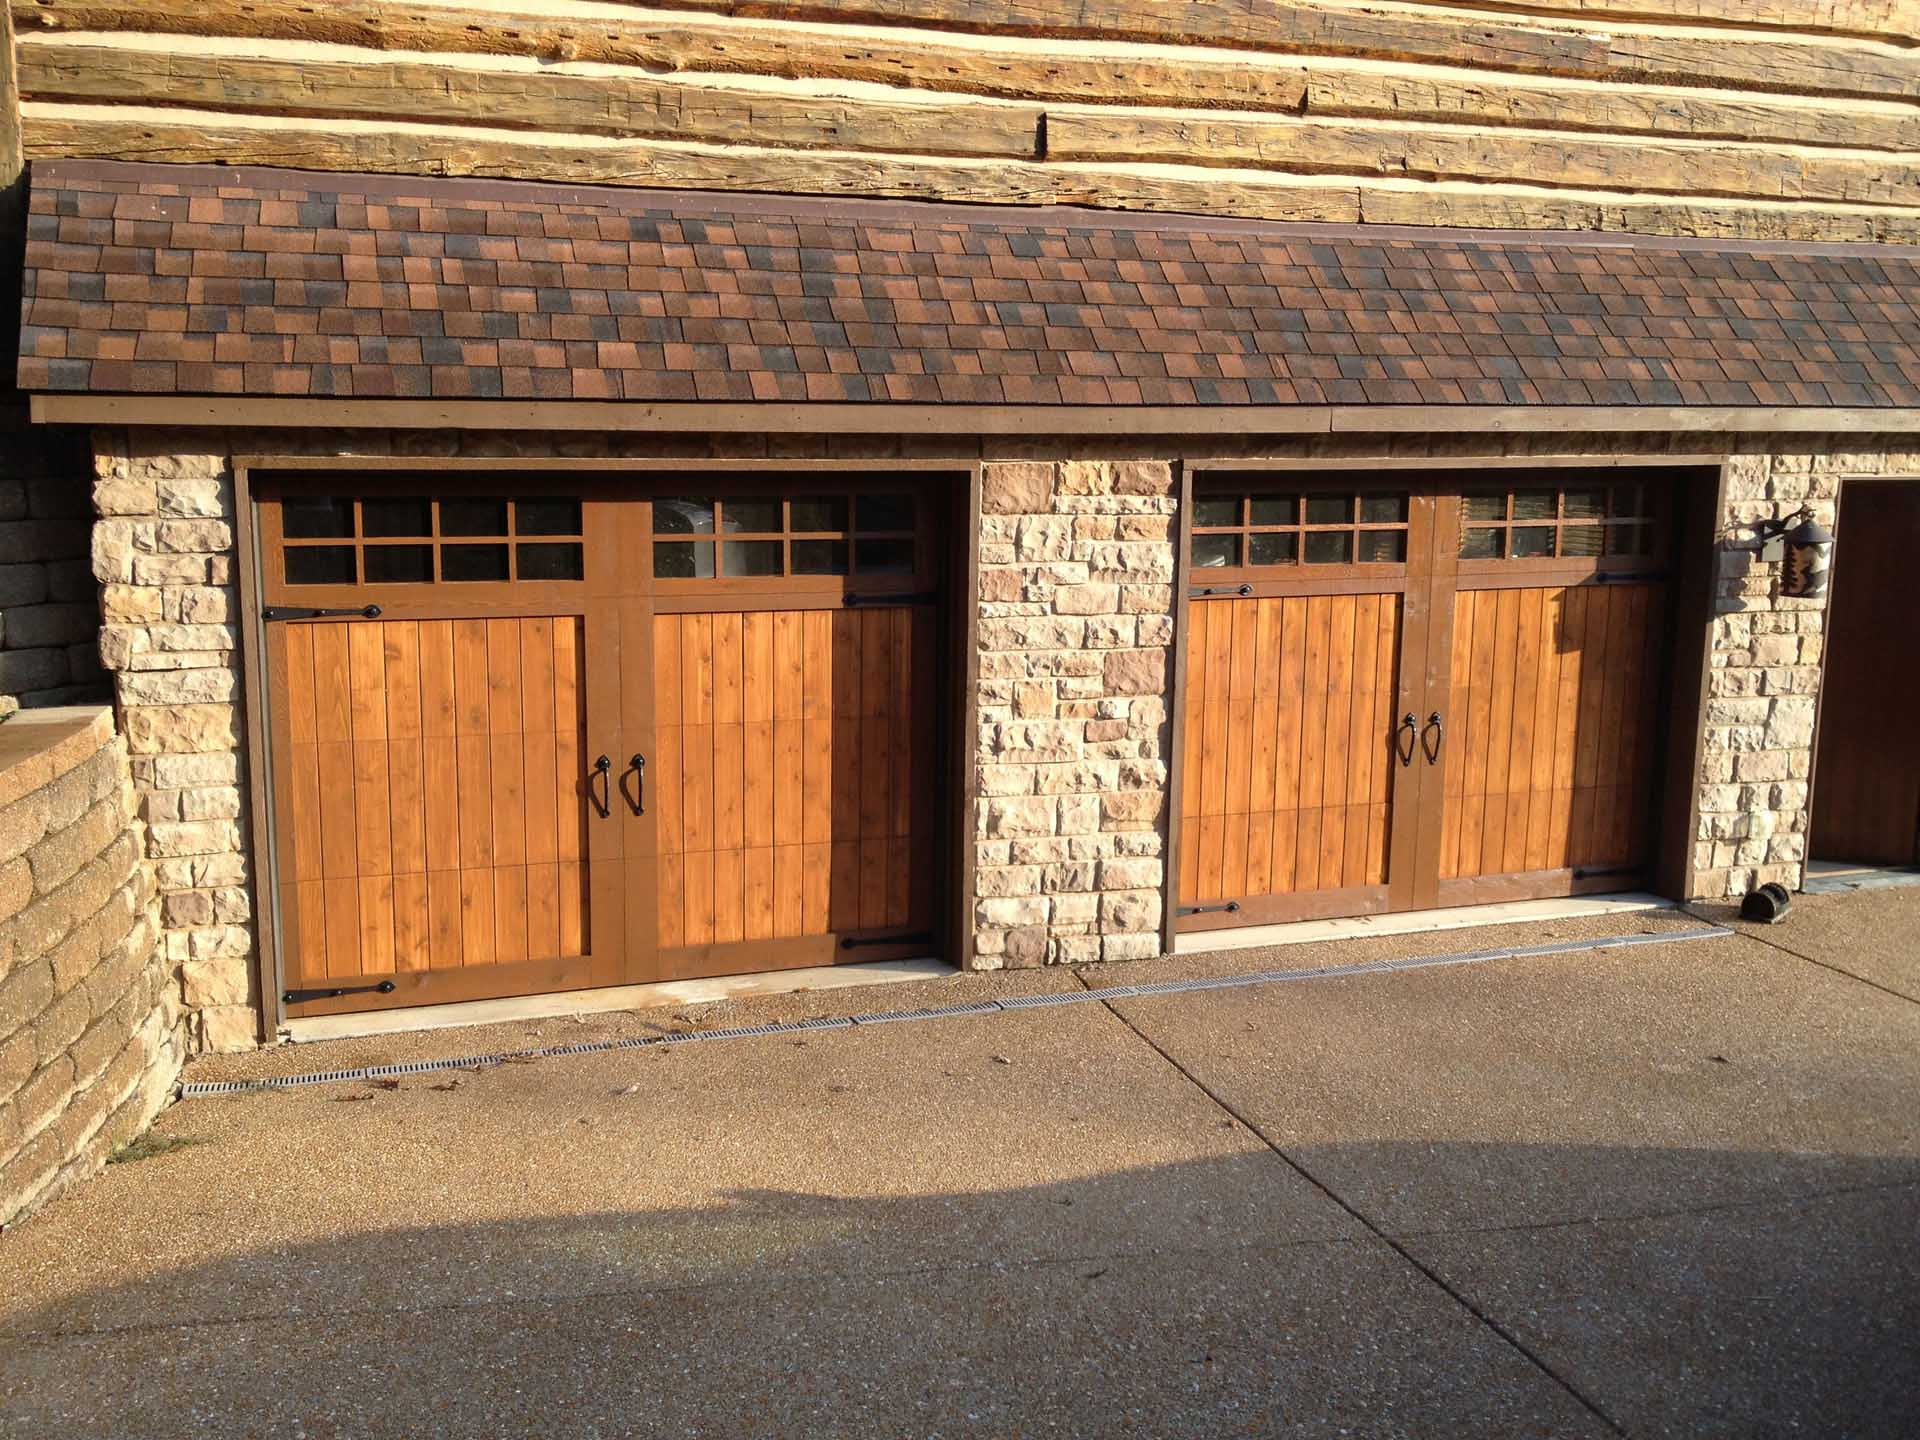 Garage And Overhead Doors In St Louis Mo  Cgx Garage Doors. Johnson Door Hardware. Stack On Garage Cabinets. Antique Barn Door Rollers. Quality Sliding Glass Doors. Garage Door Support Strut. Add On Garage. Garage Sales Saturday. Pulley Systems For Garage Storage